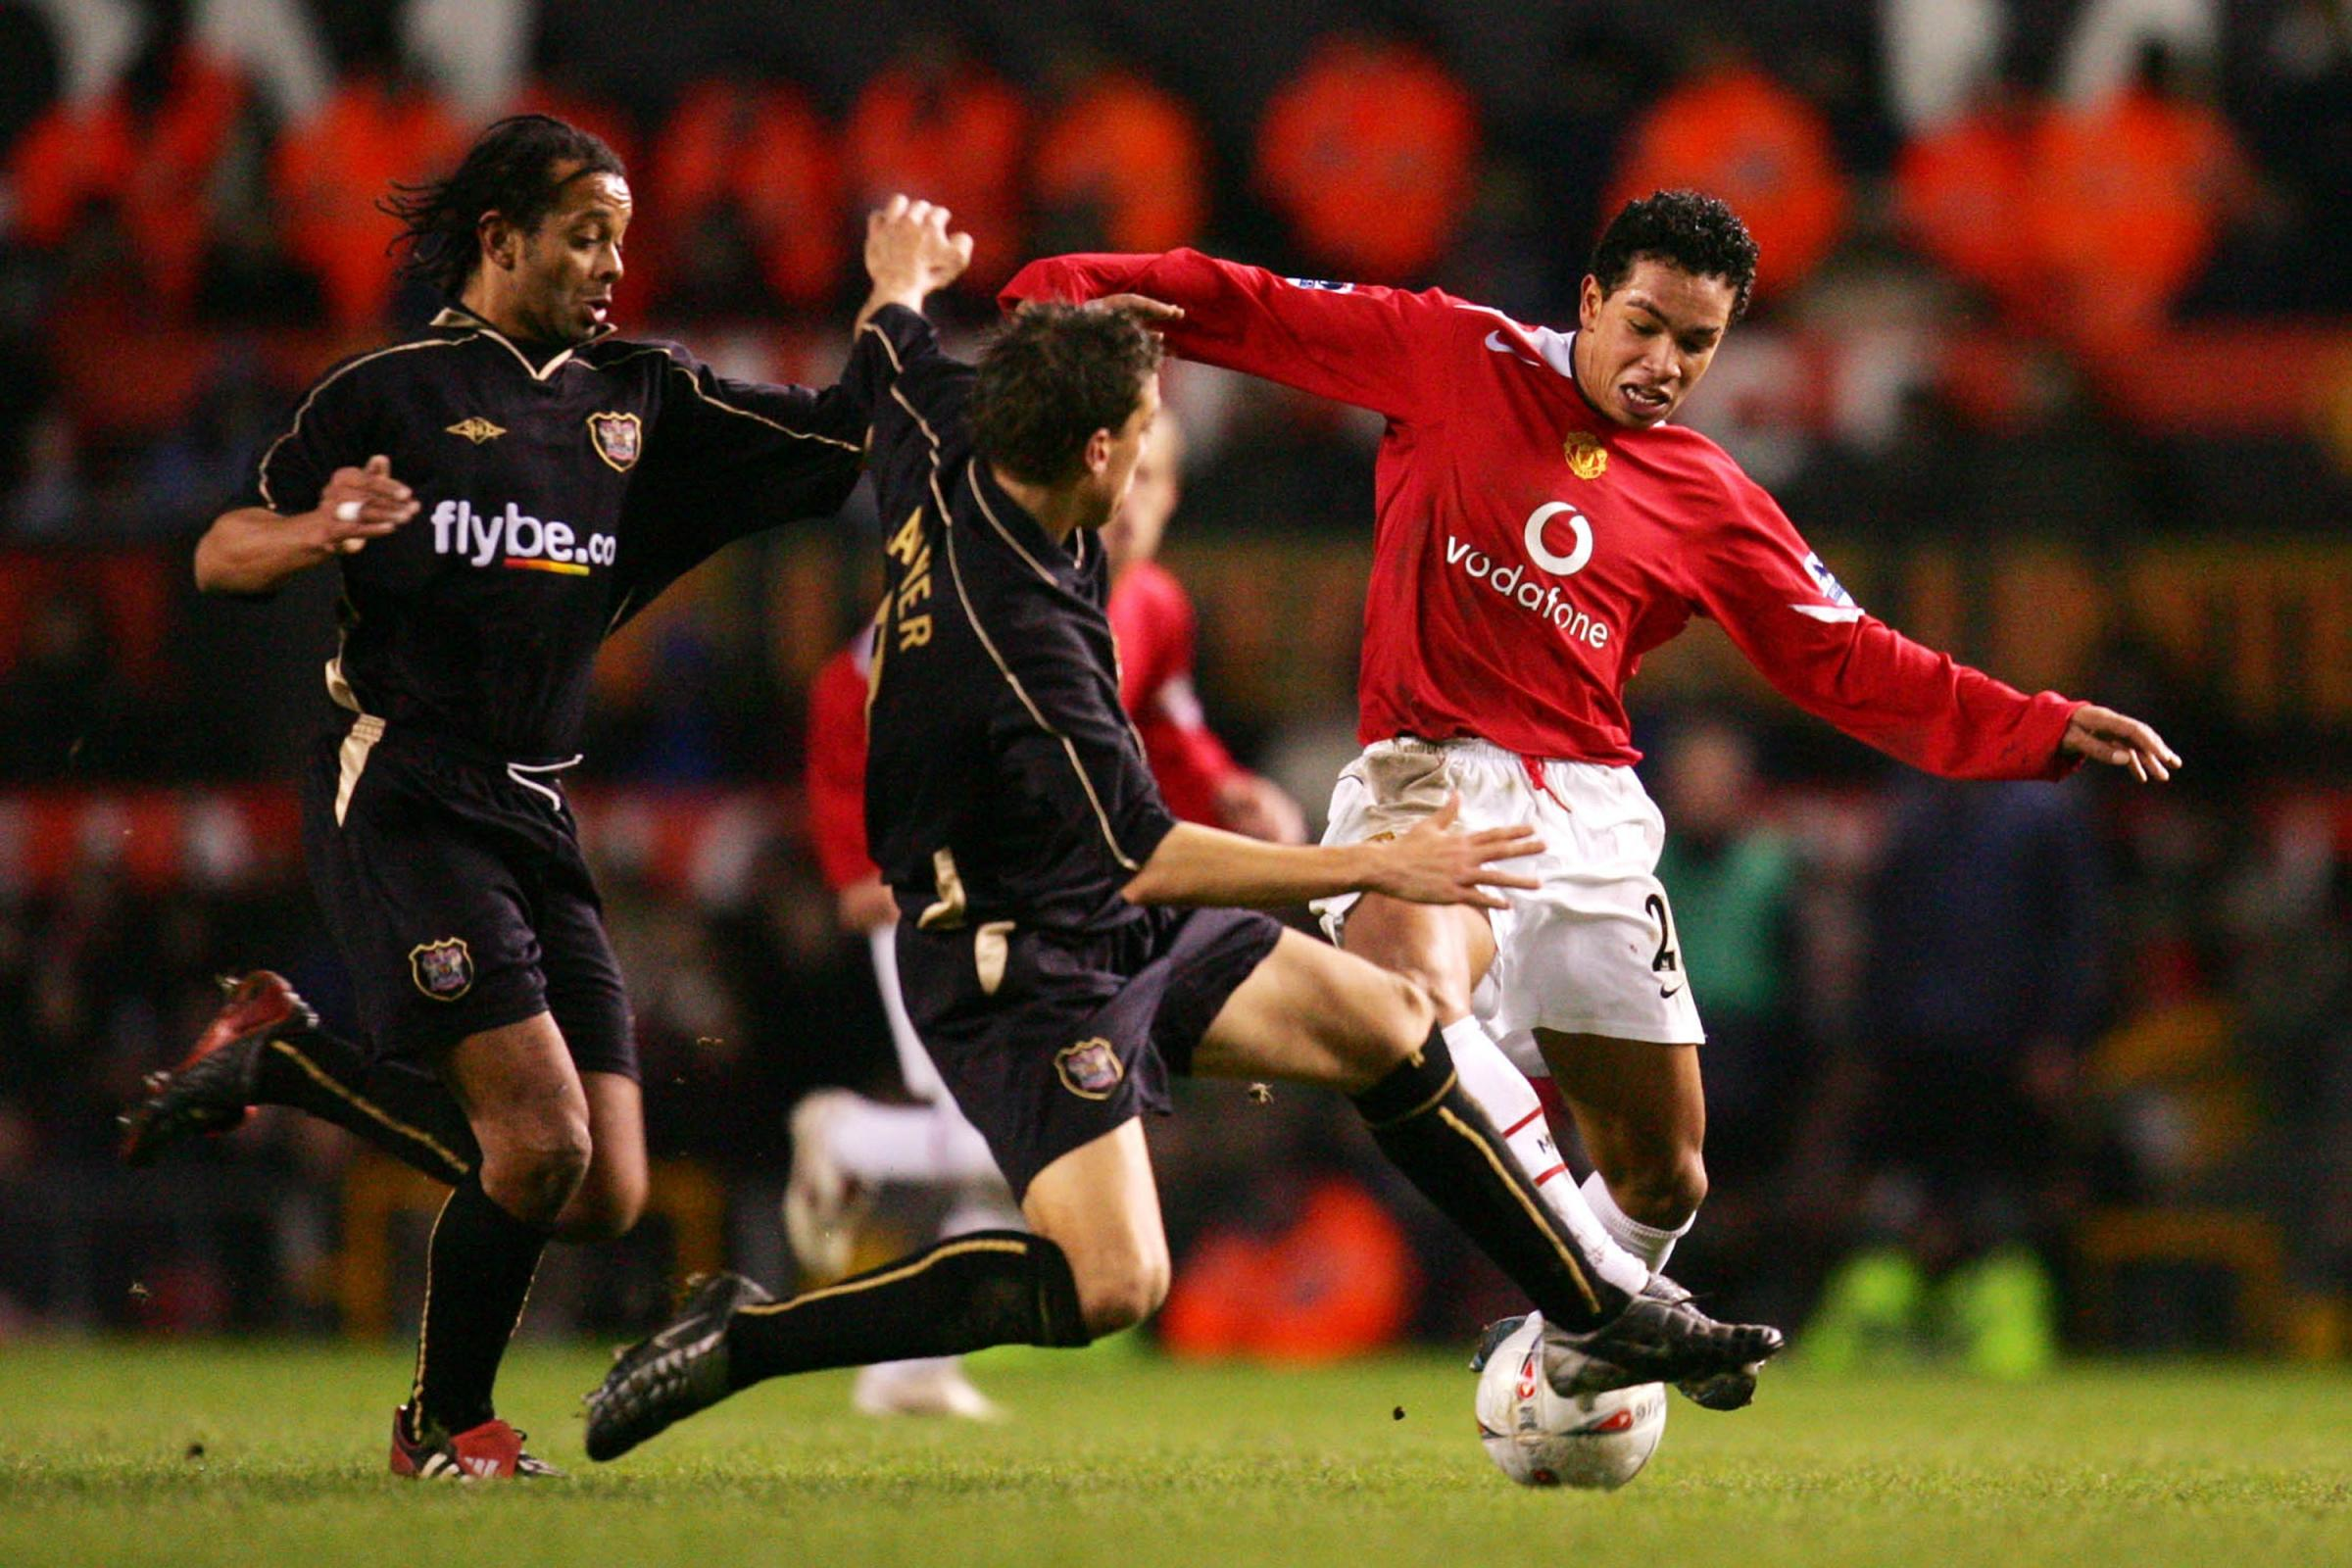 The last time Manchester United's FA Cup third round tie was not on live TV was in 2005 against Exeter (Matthew Ashton/EMPICS Sport)